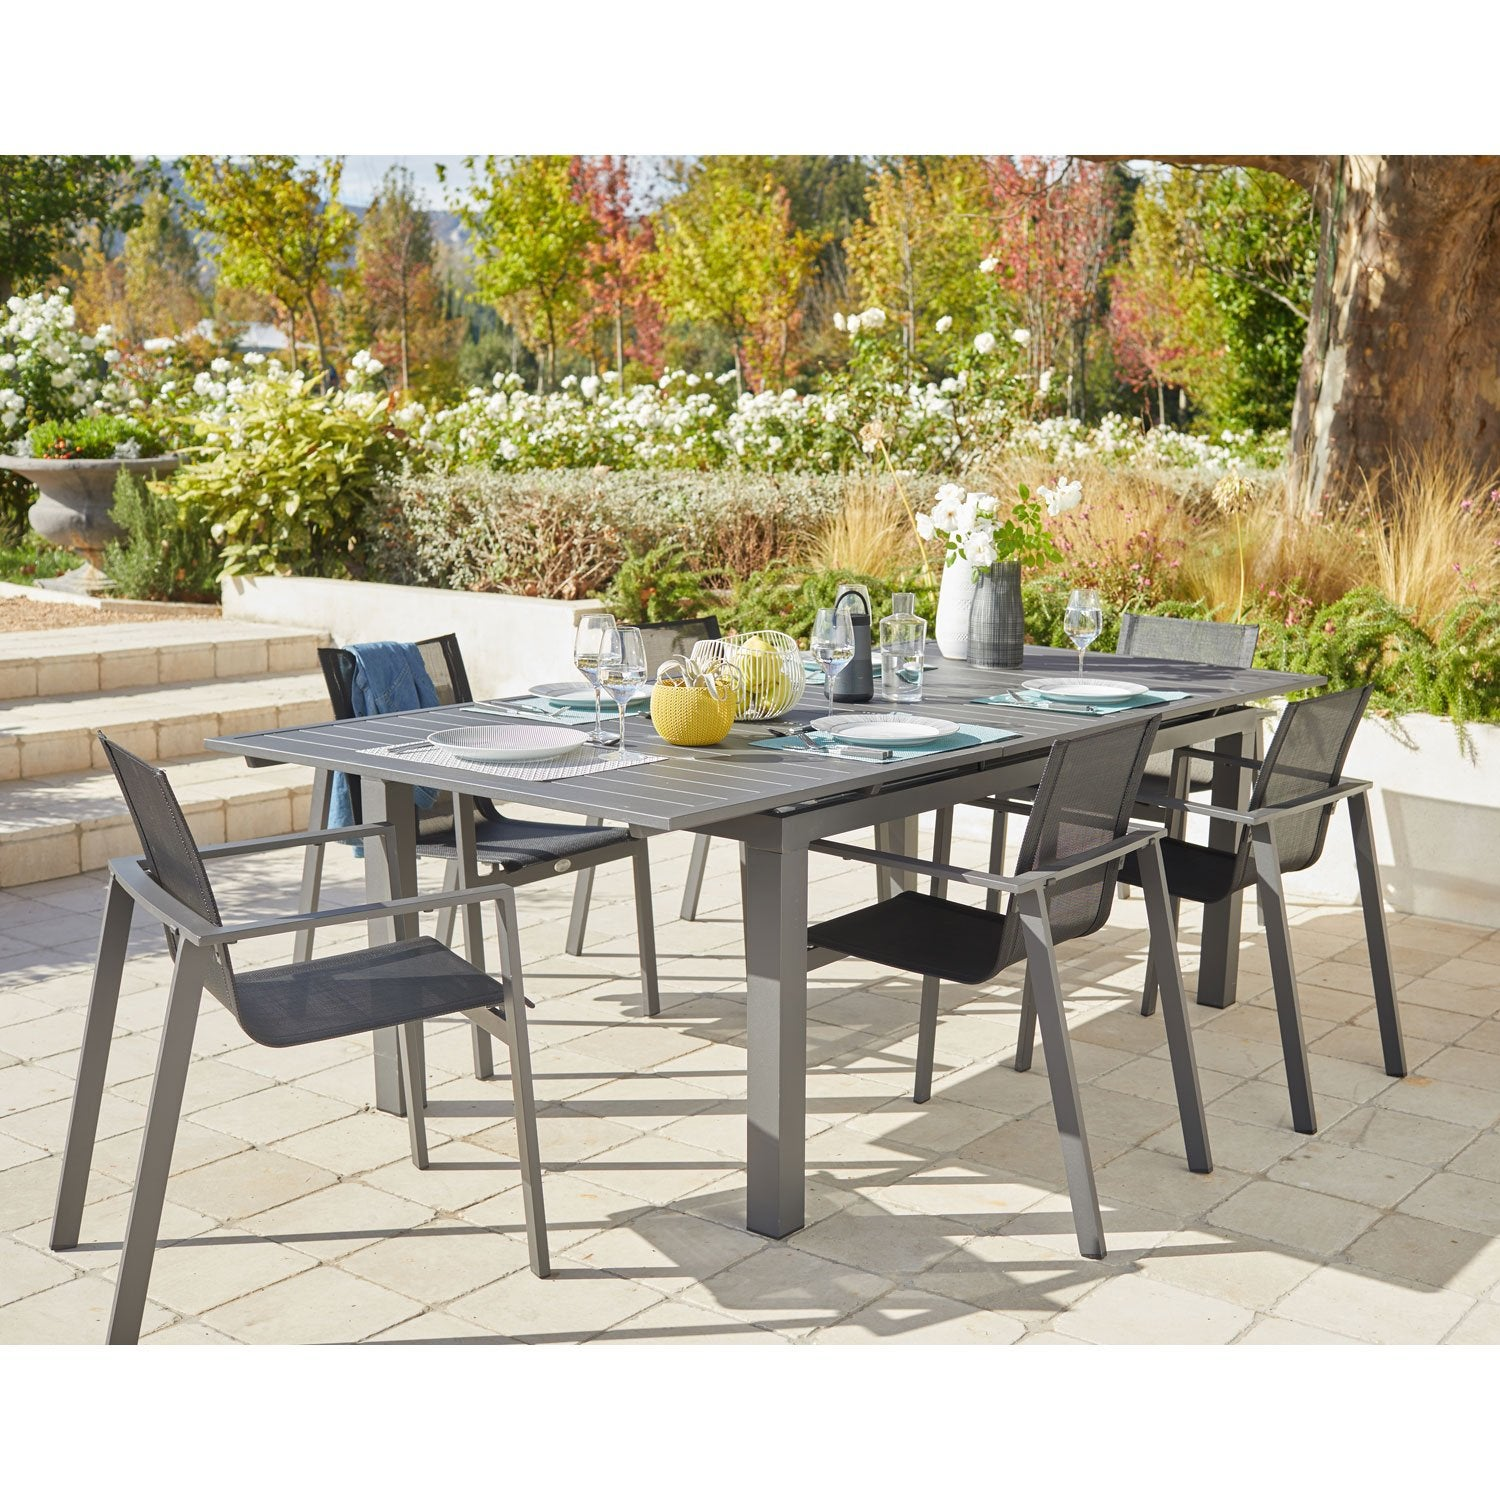 Salon de jardin miami aluminium gris anthracite 6 for Salon de jardin 6 personnes